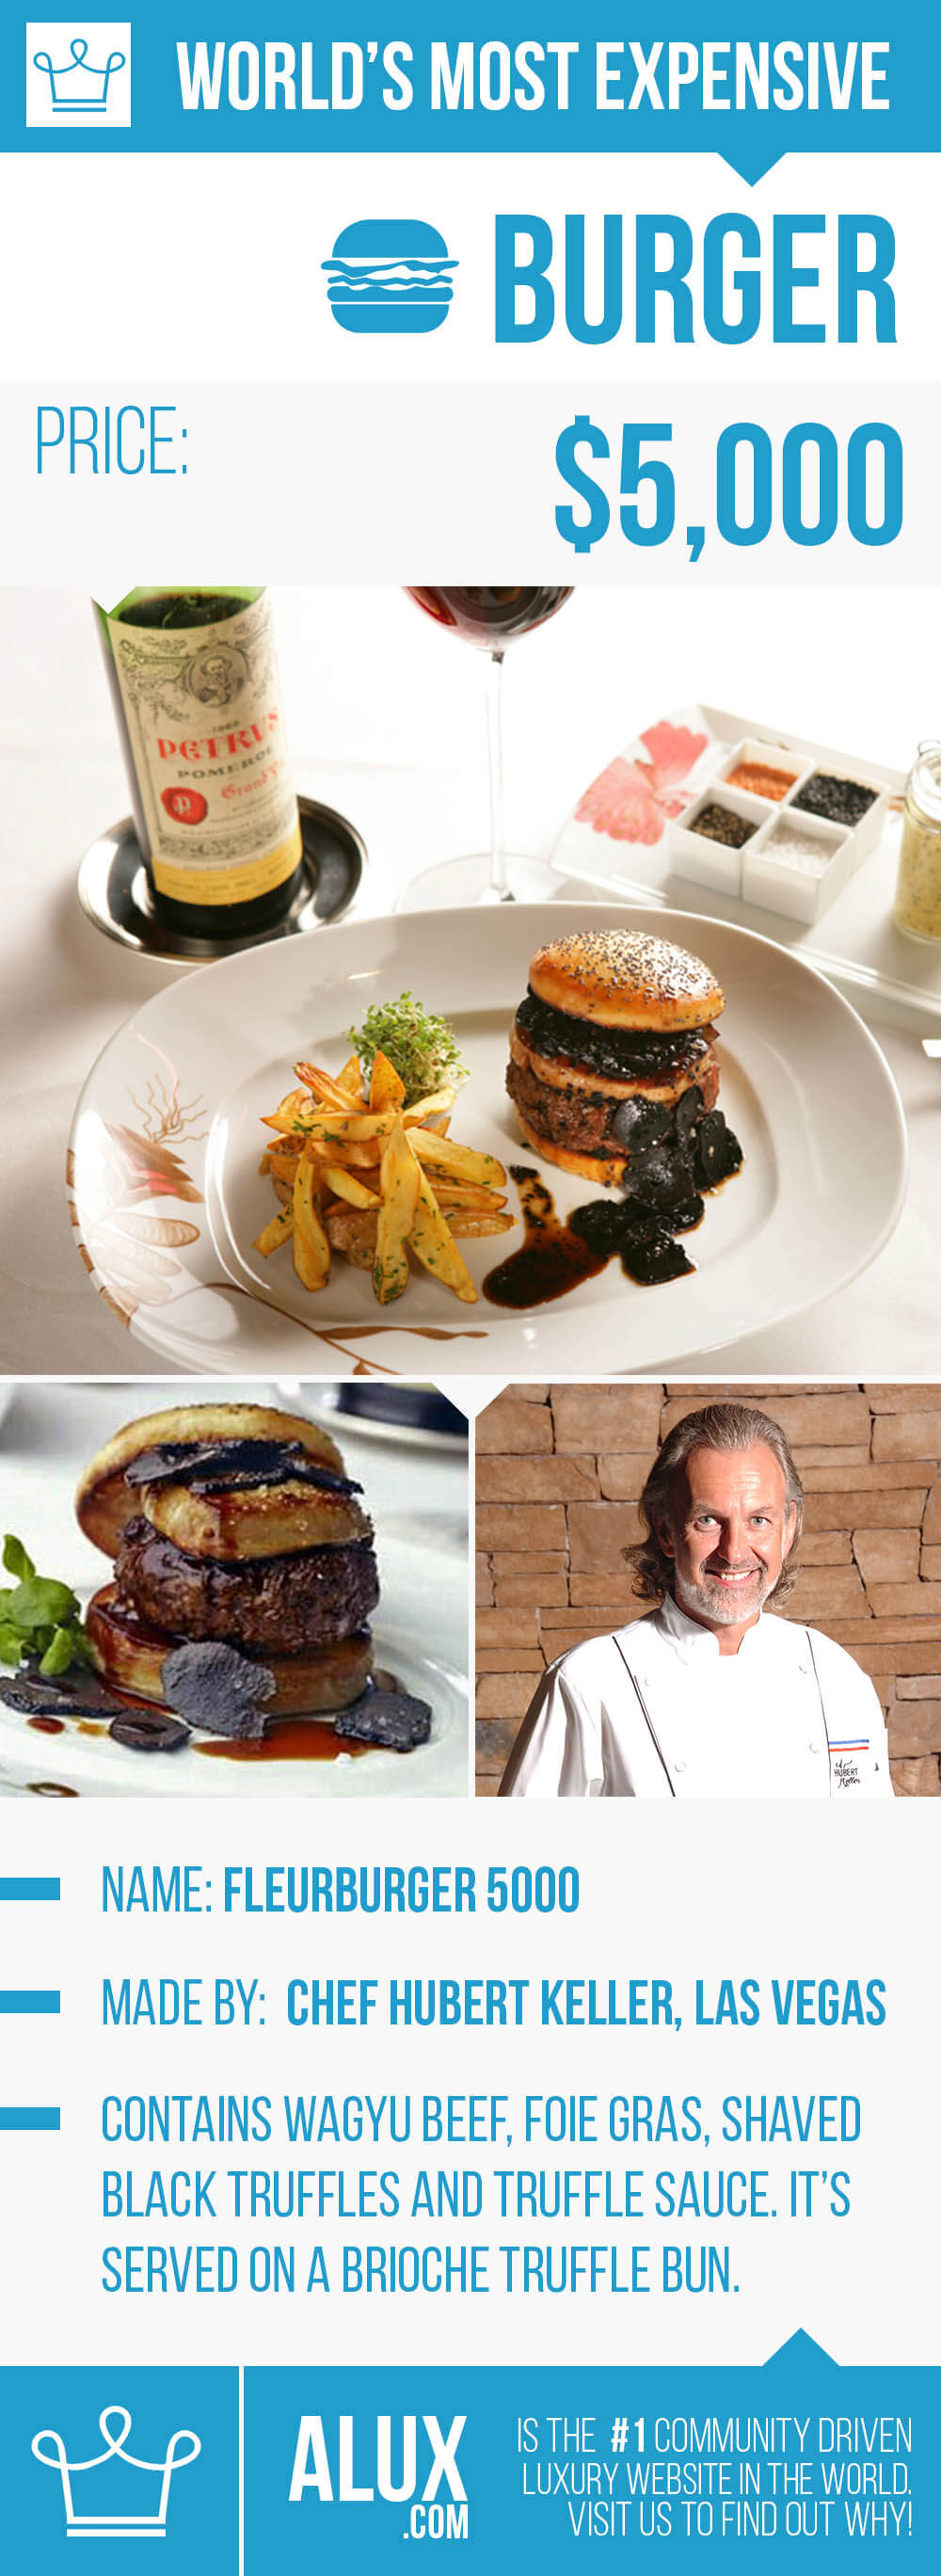 most expensive burger hamburger in the world fleurburger 5000 fleur las vegas truffle price images infographic alux